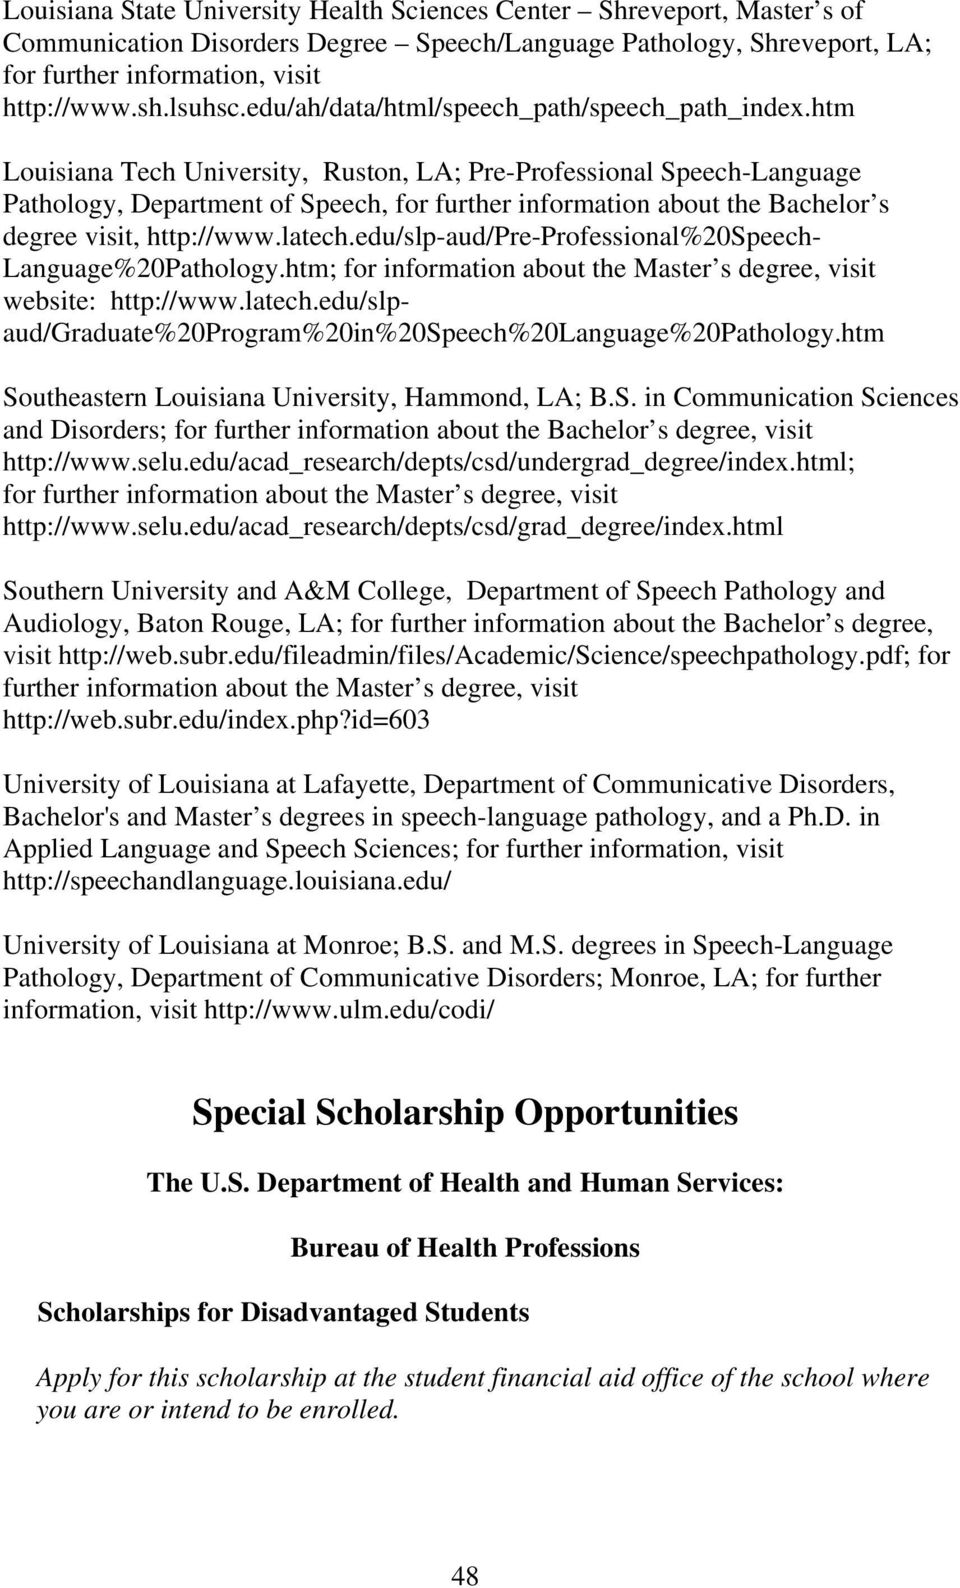 htm Louisiana Tech University, Ruston, LA; Pre-Professional Speech-Language Pathology, Department of Speech, for further information about the Bachelor s degree visit, http://www.latech.